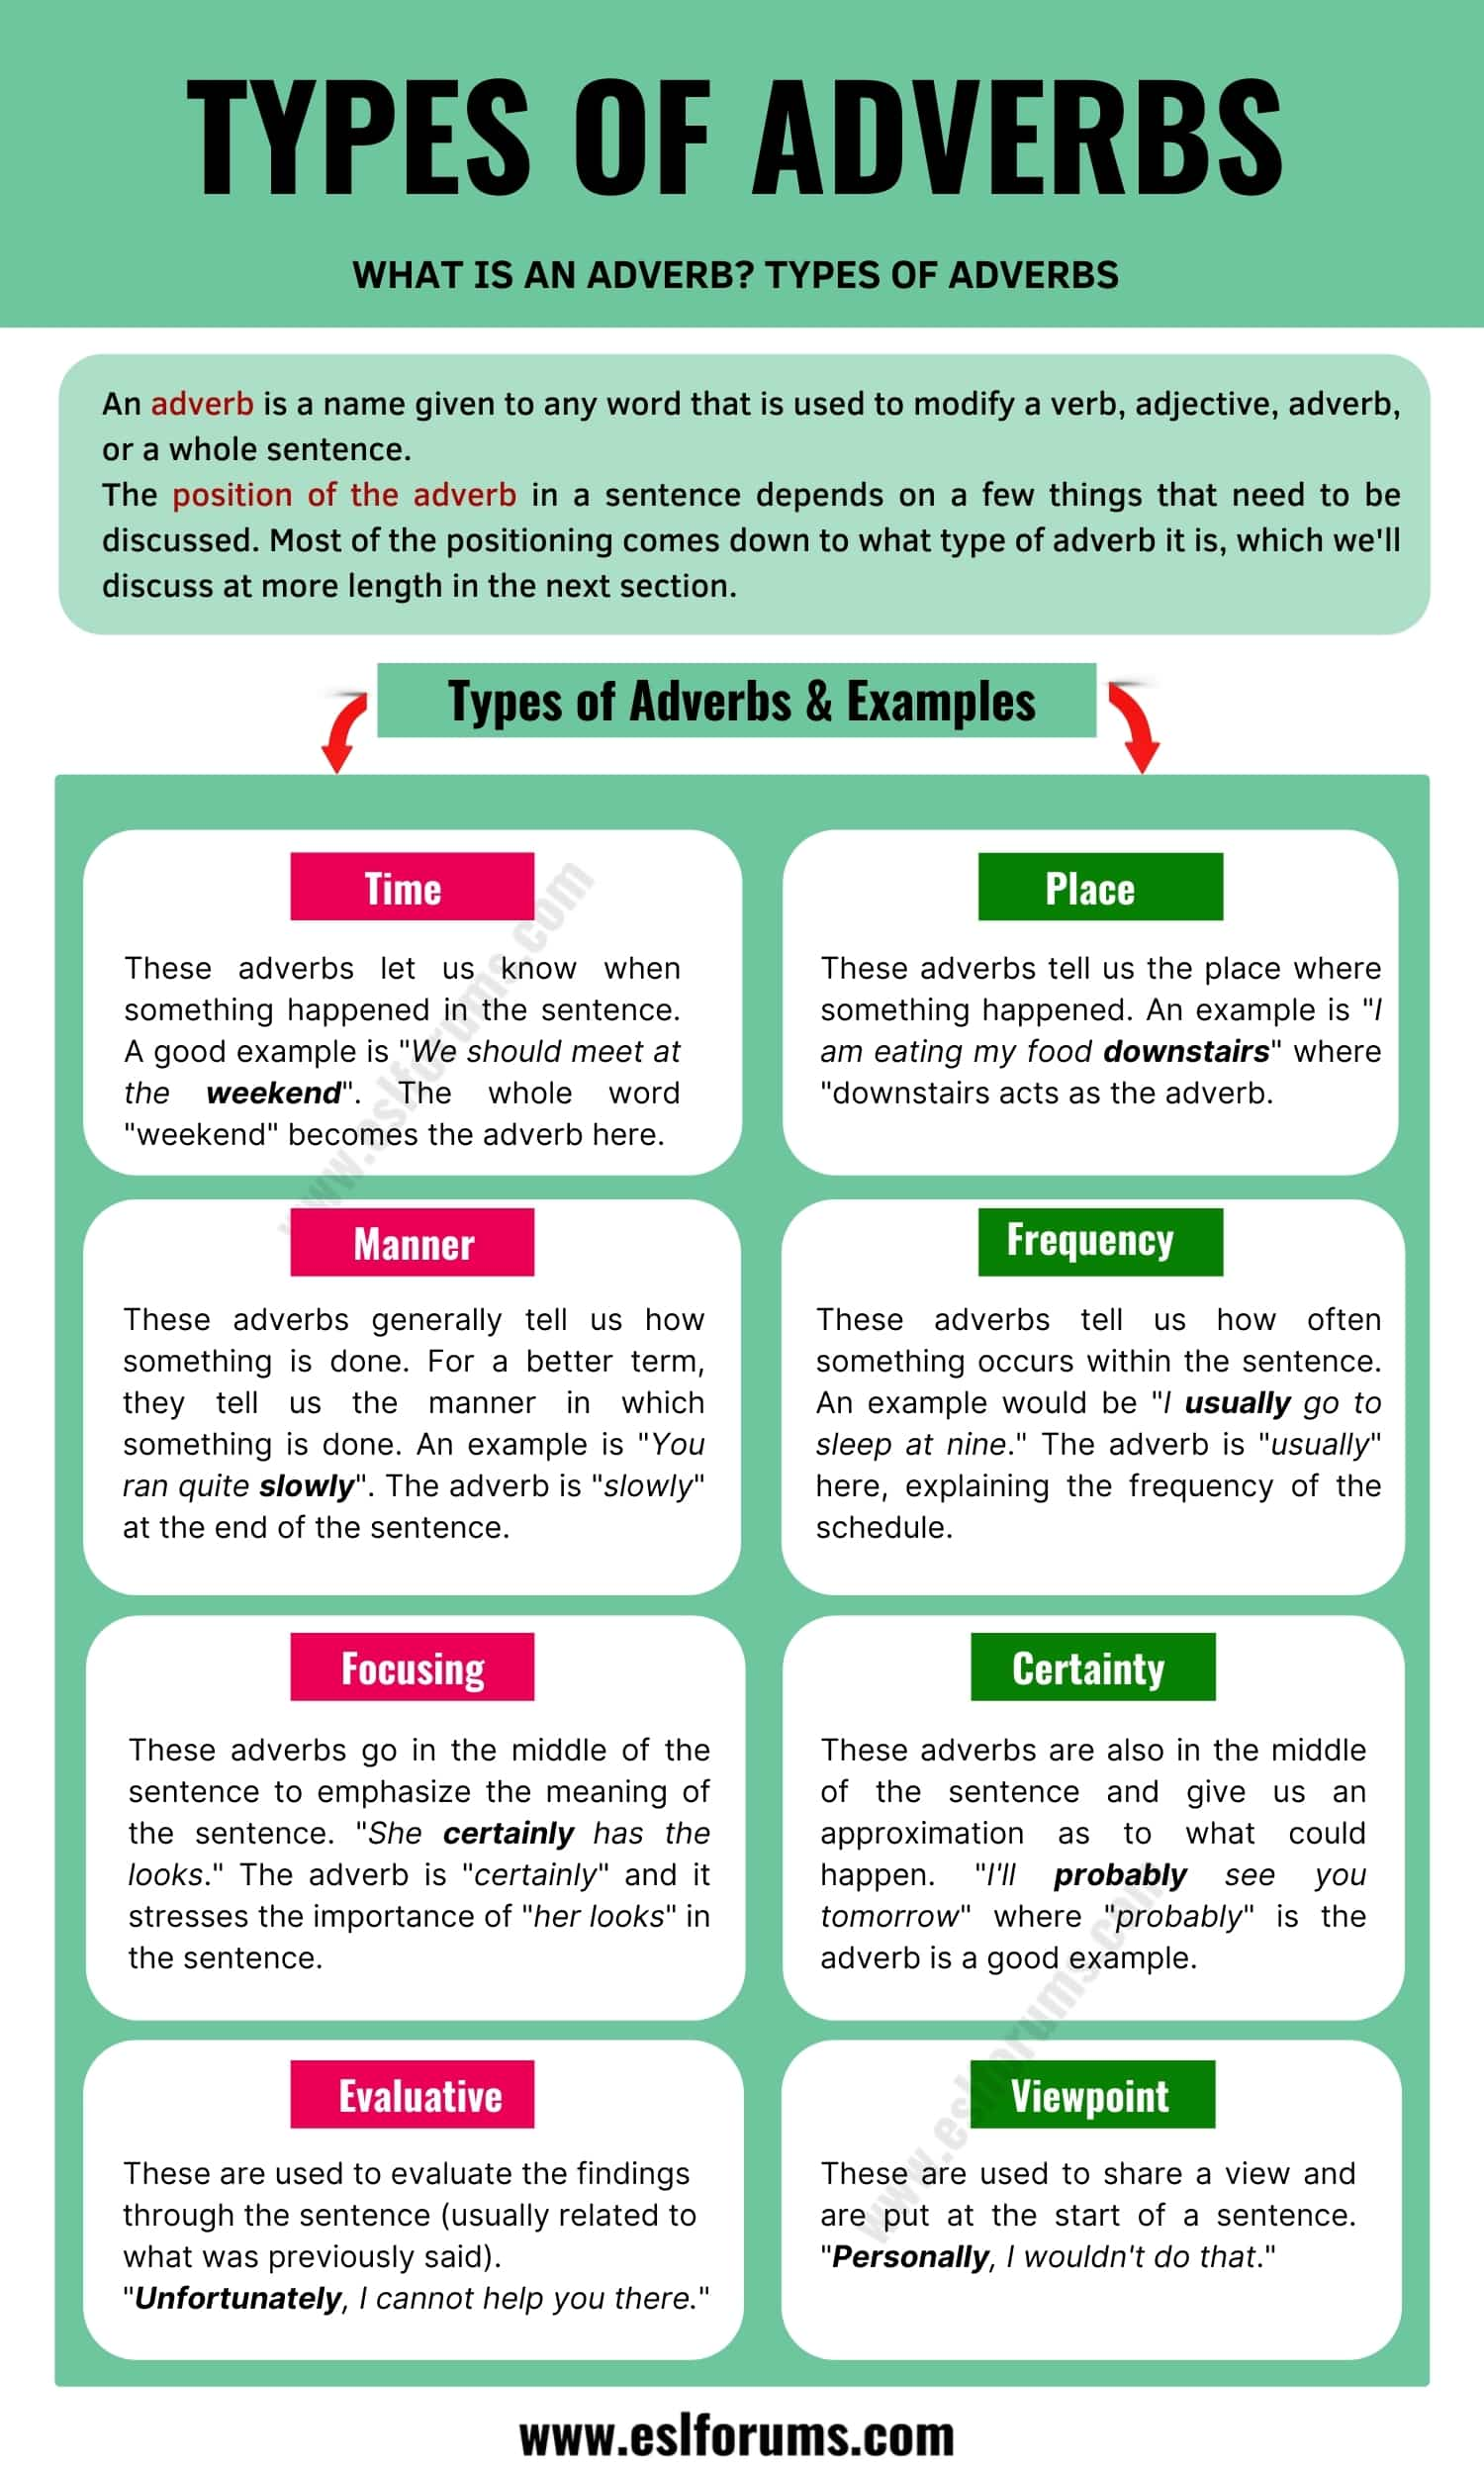 What Is an Adverb? Types and Remarkable Examples of Adverbs